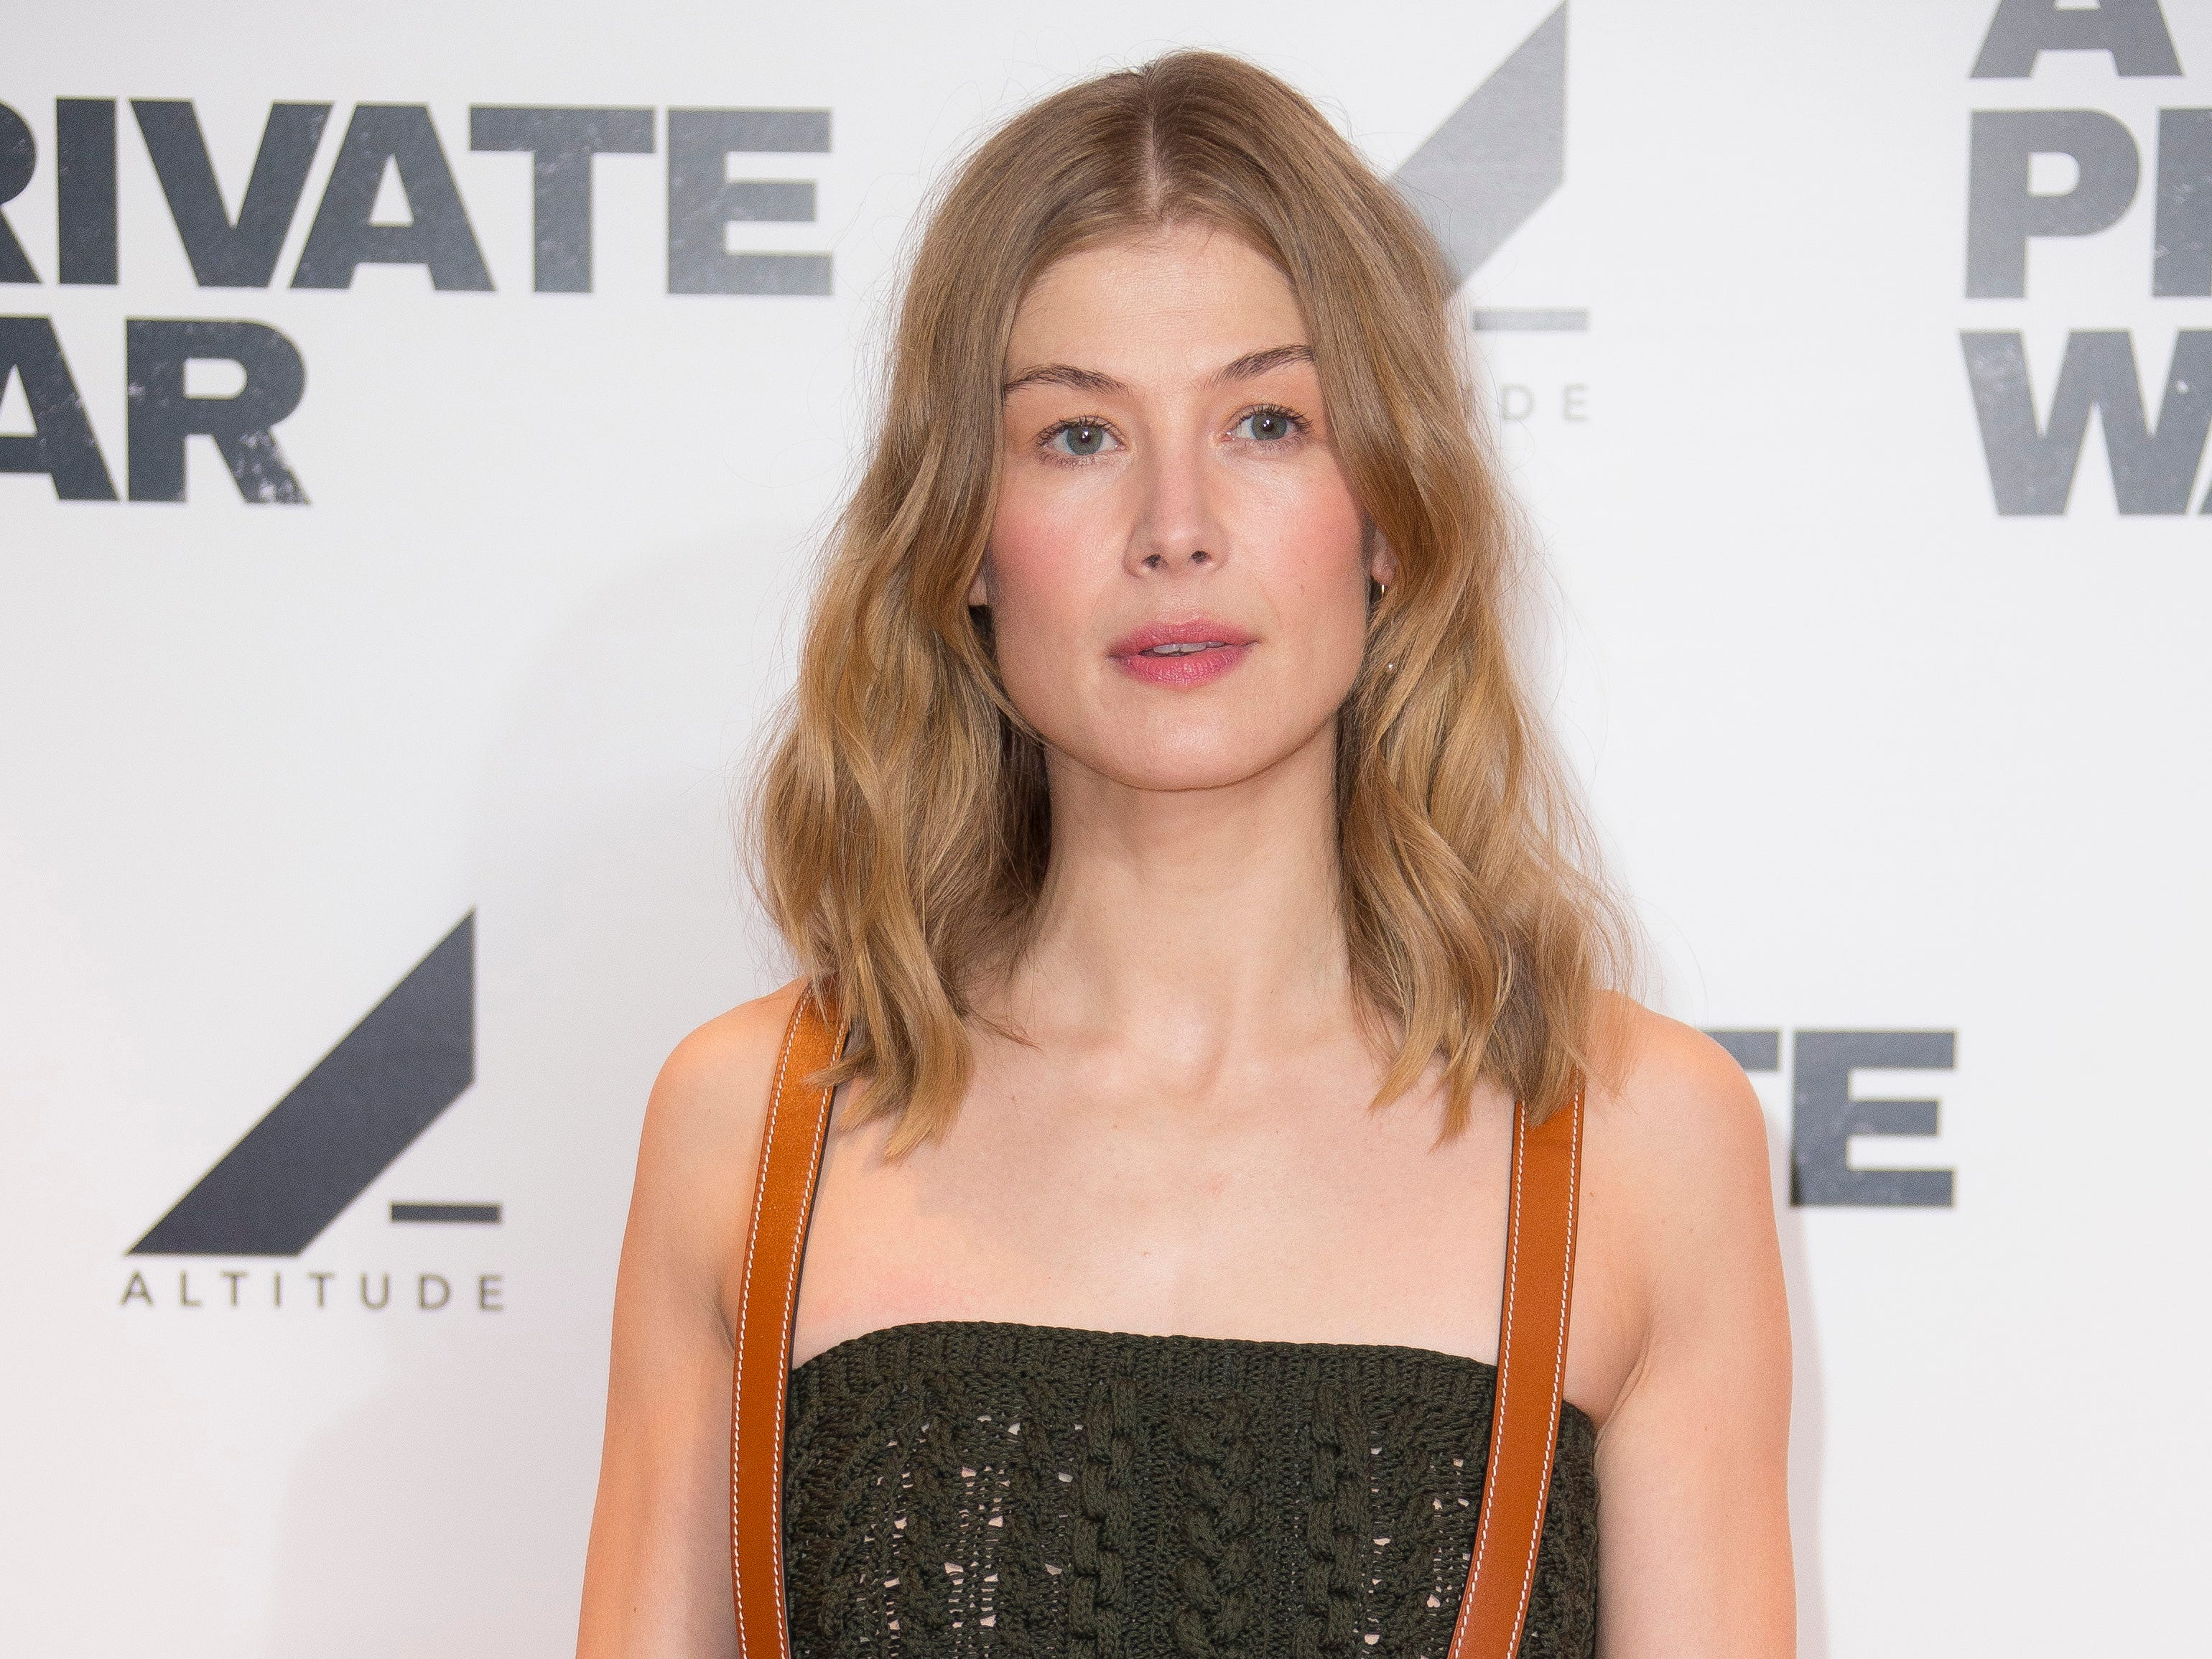 Actress Rosamund Pike poses for photographers upon arrival for a photo call for A Private War, at a central London cinema, Monday, Feb 4, 2019. (Photo by Joel C Ryan/Invision/AP) ORG XMIT: LENT106